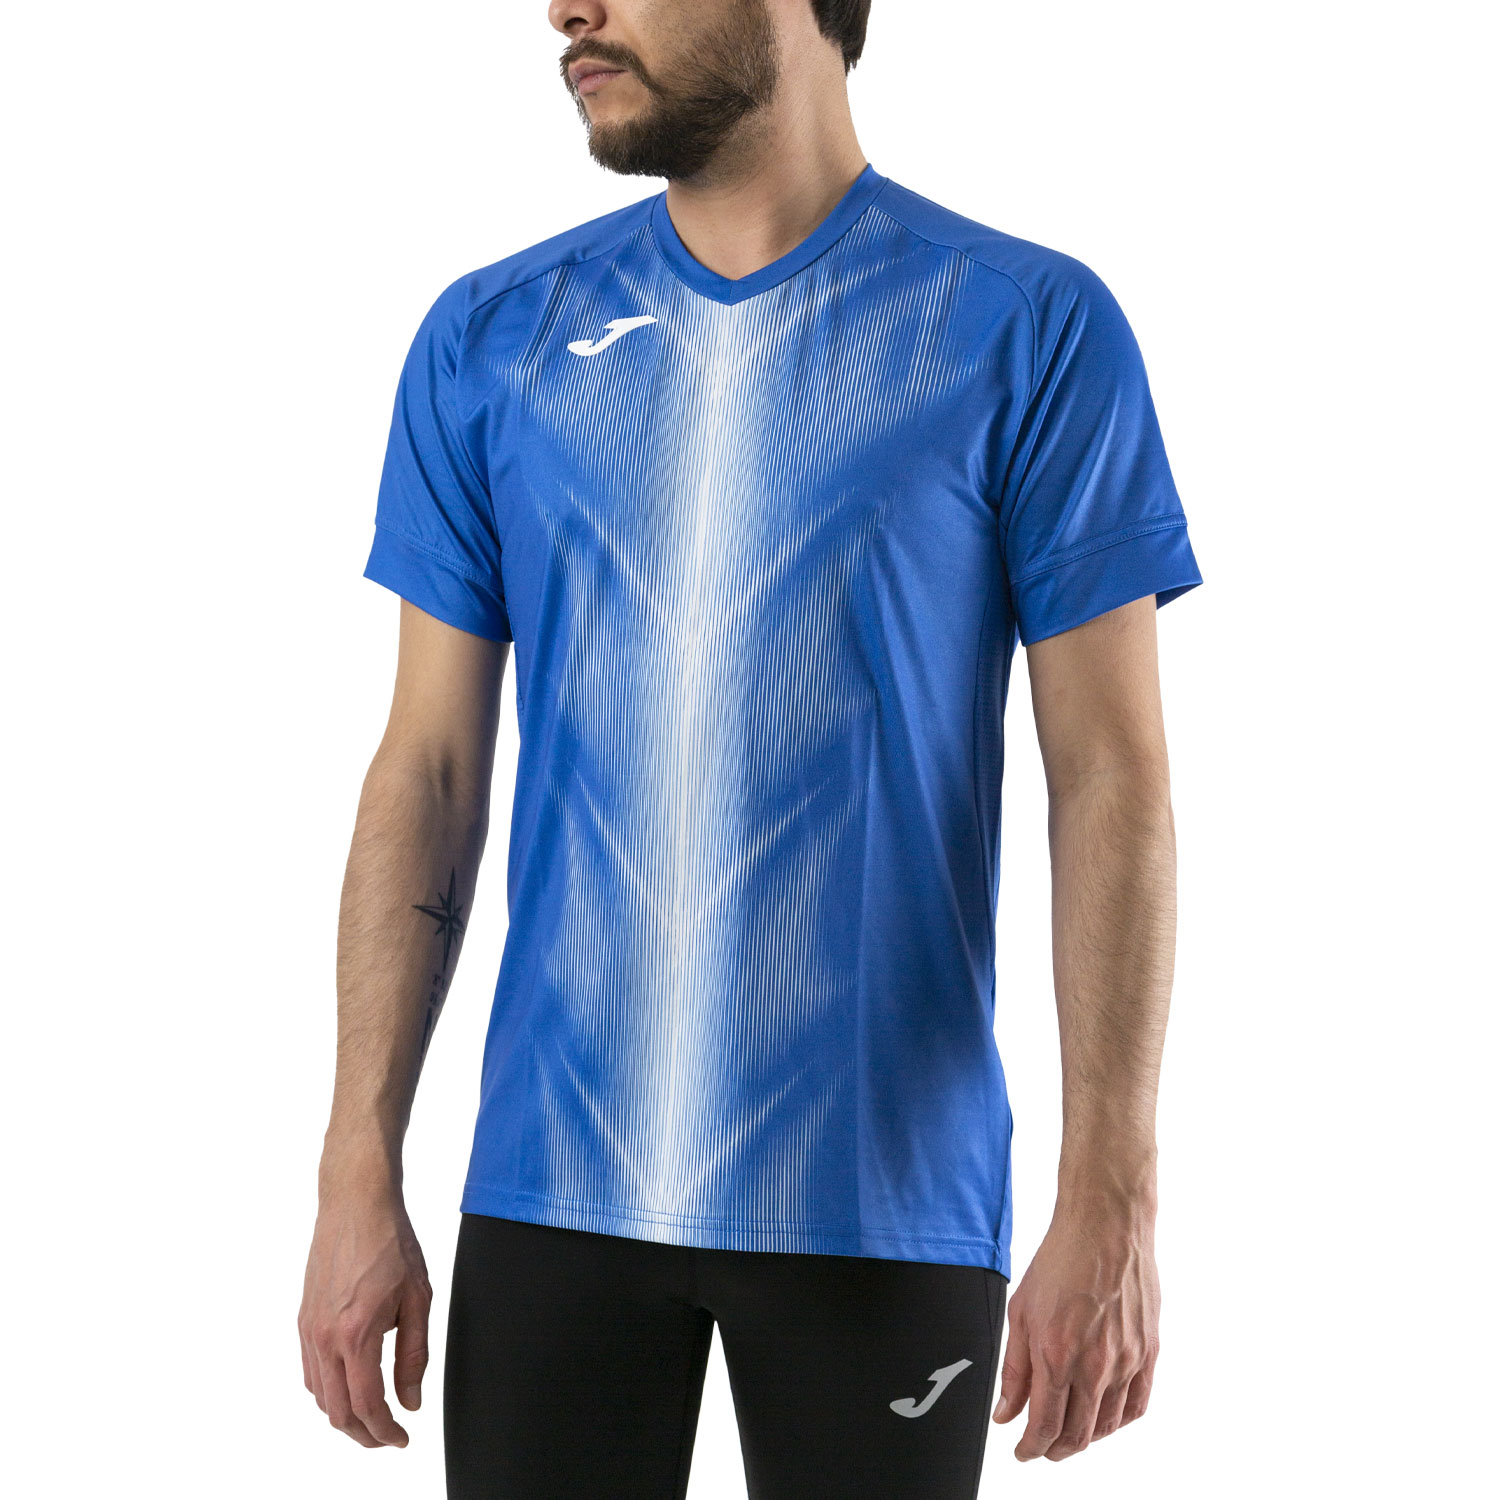 Joma Olimpia Graphic T-Shirt - Royal/White